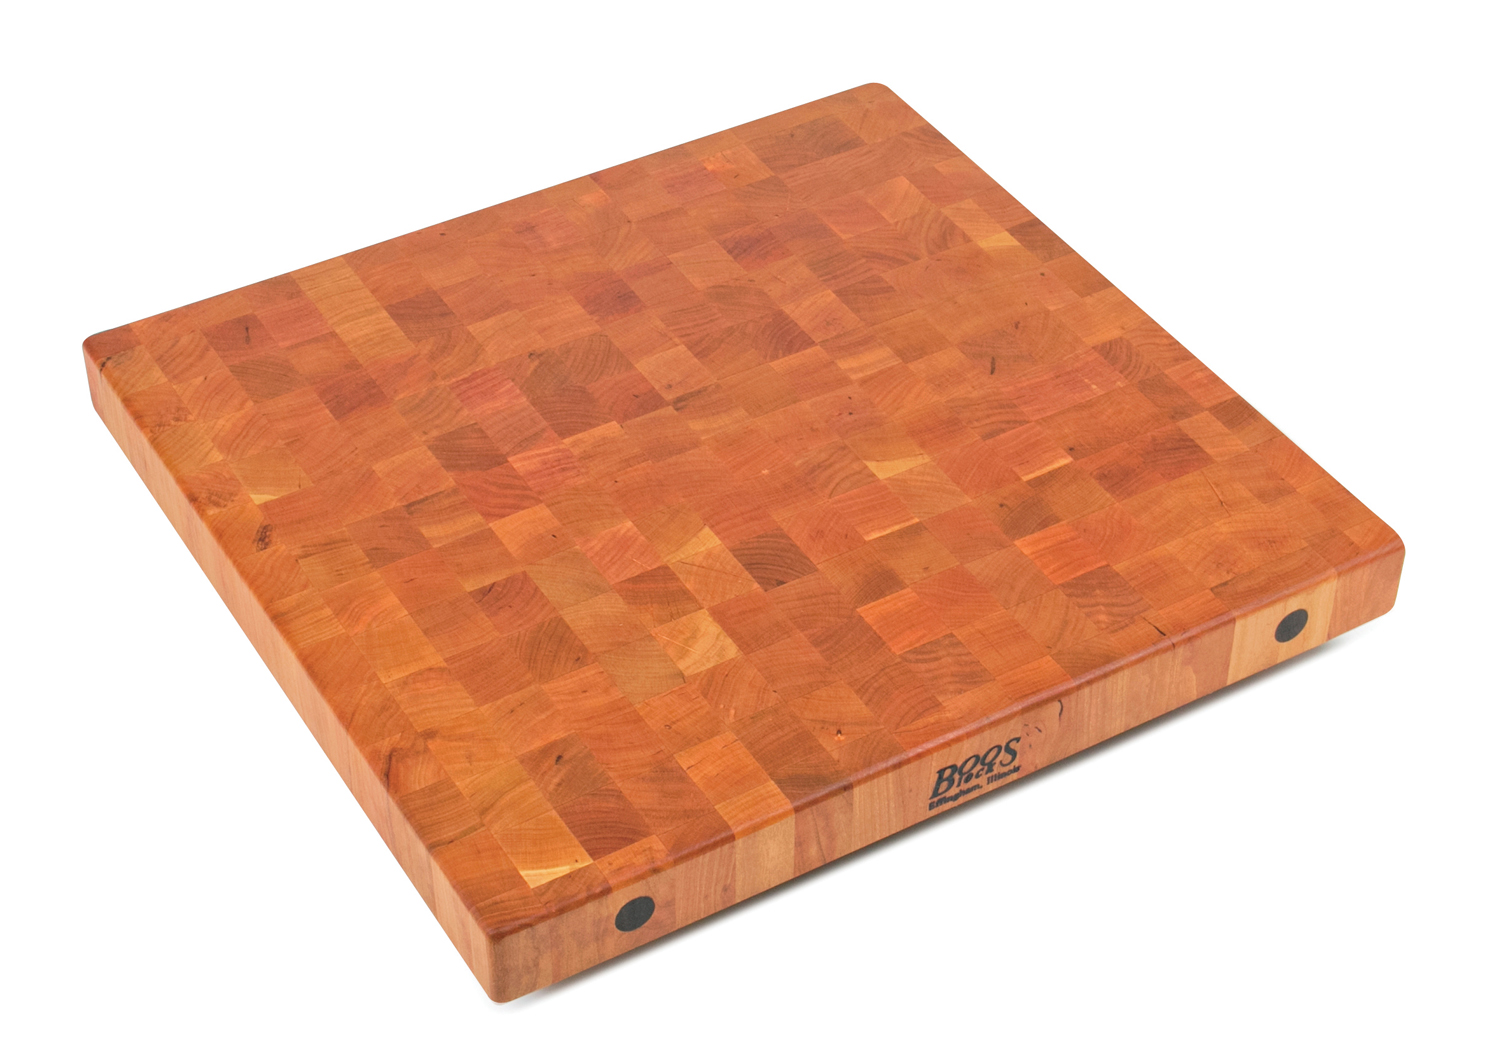 Boos 2-1/4 in. thick 38 inch wide cherry end grain island tops